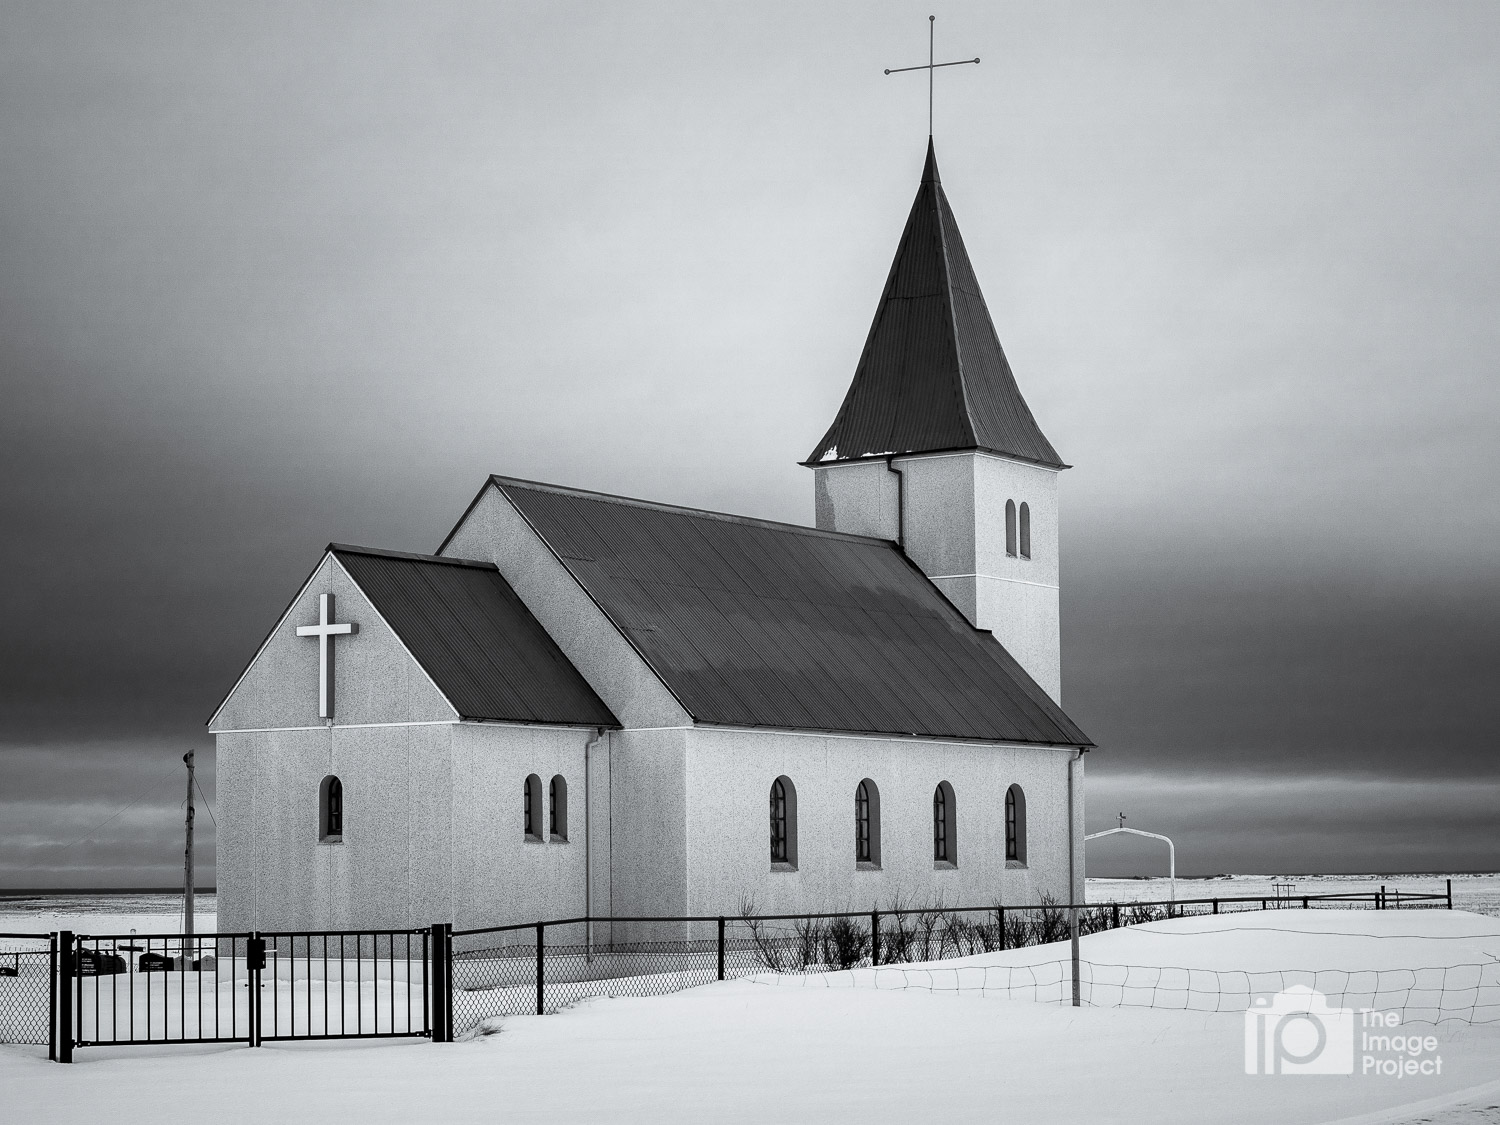 Church in western Iceland looking out across the sea during an overcast day